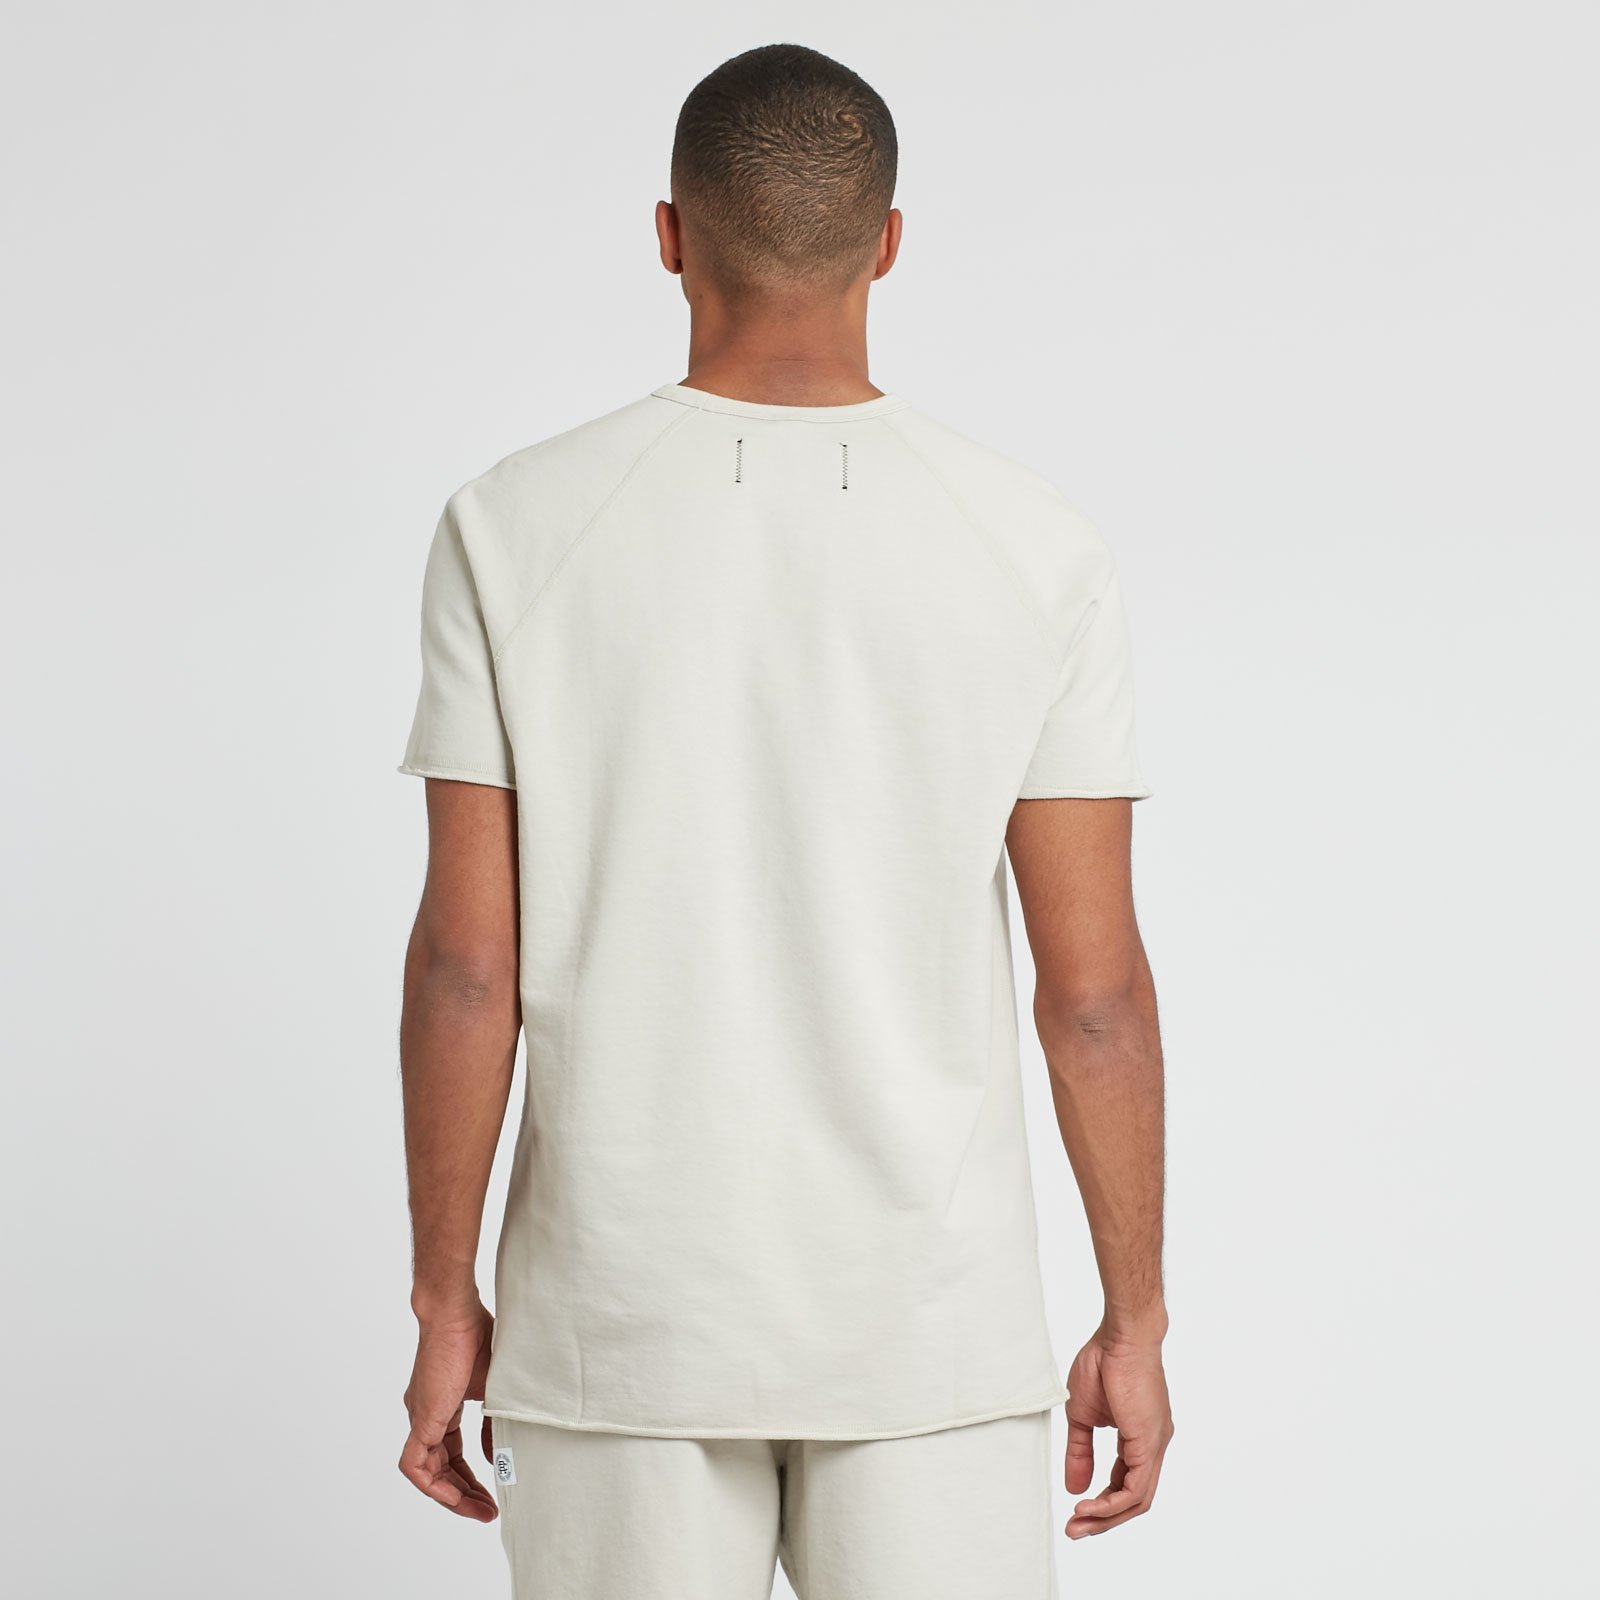 493a7fa62c Reigning Champ Raw Edge Short Sleeve Crew - Rc-1071-dust - Sneakersnstuff